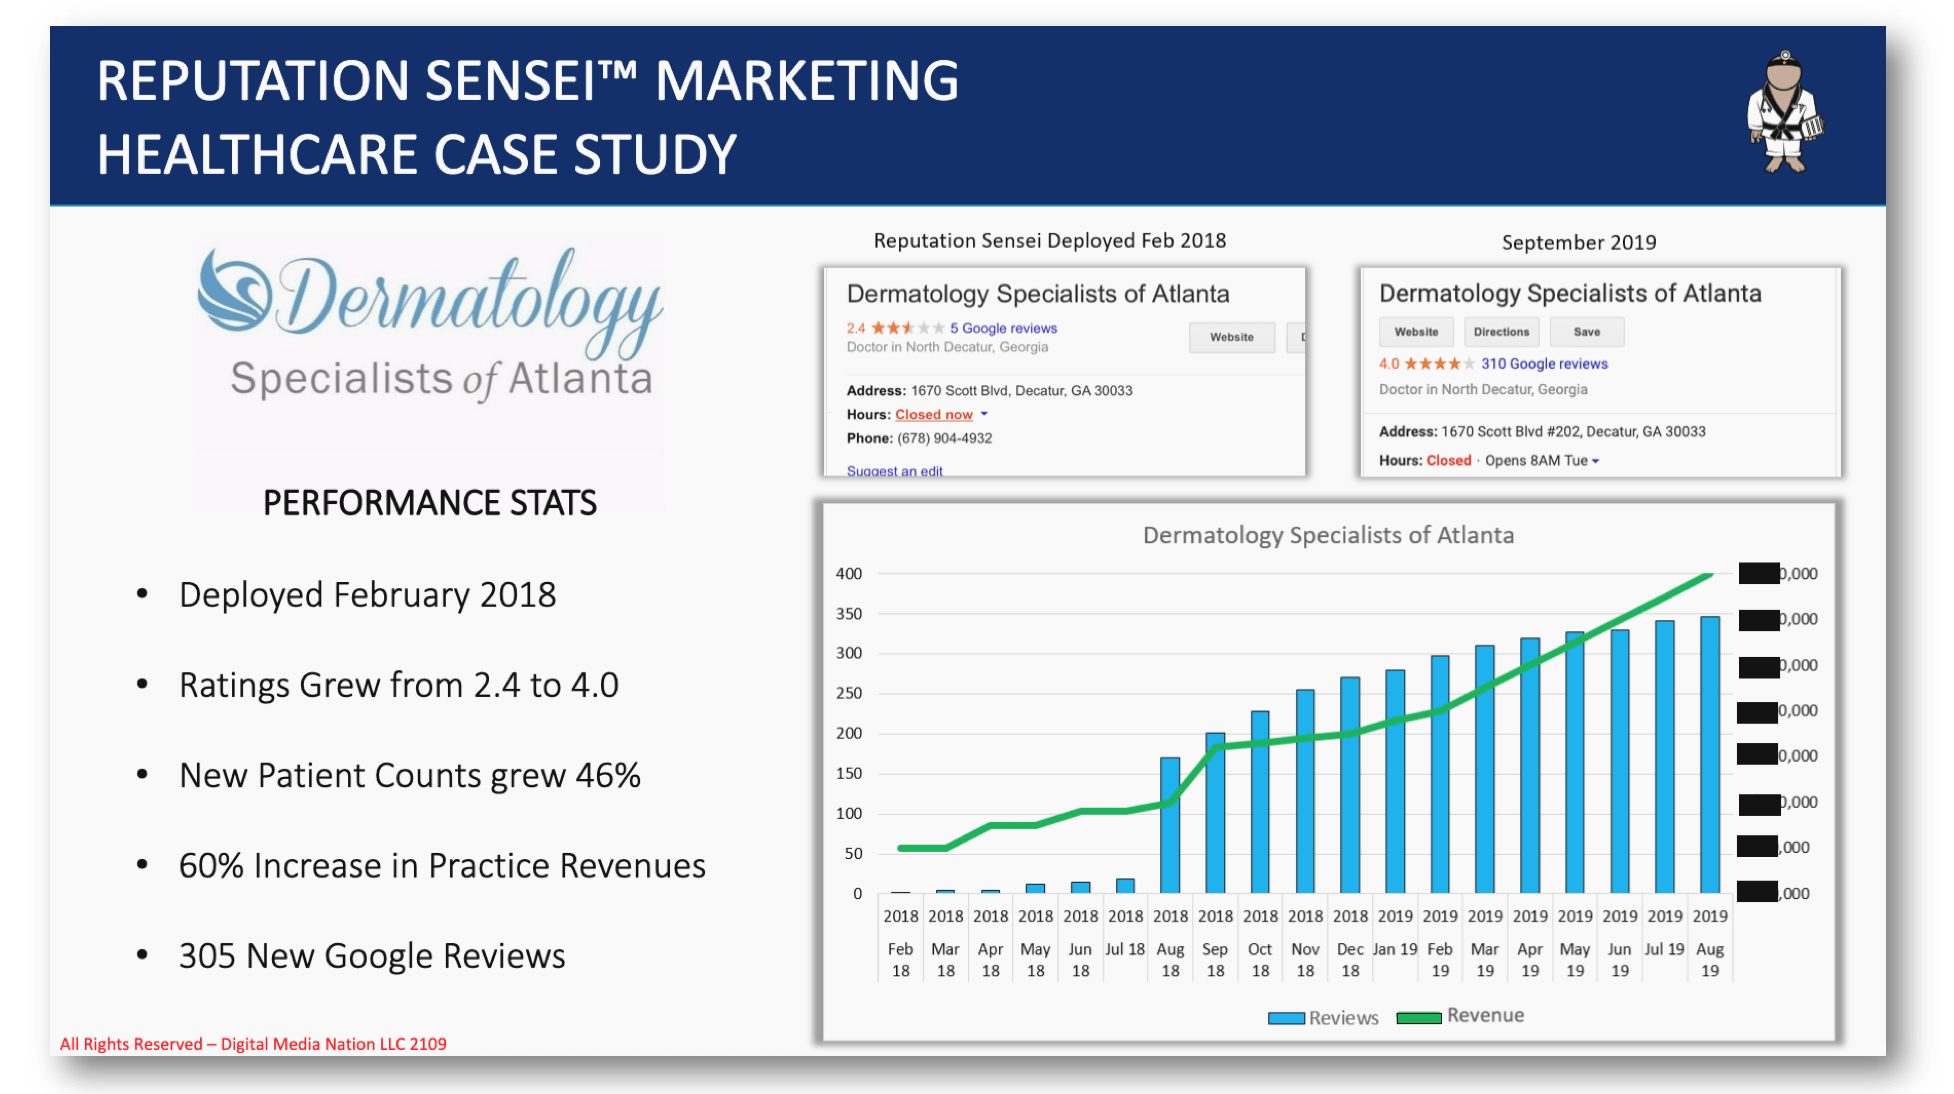 Dermagology Specialists of Atlanta - Performance Stats Screen Shot